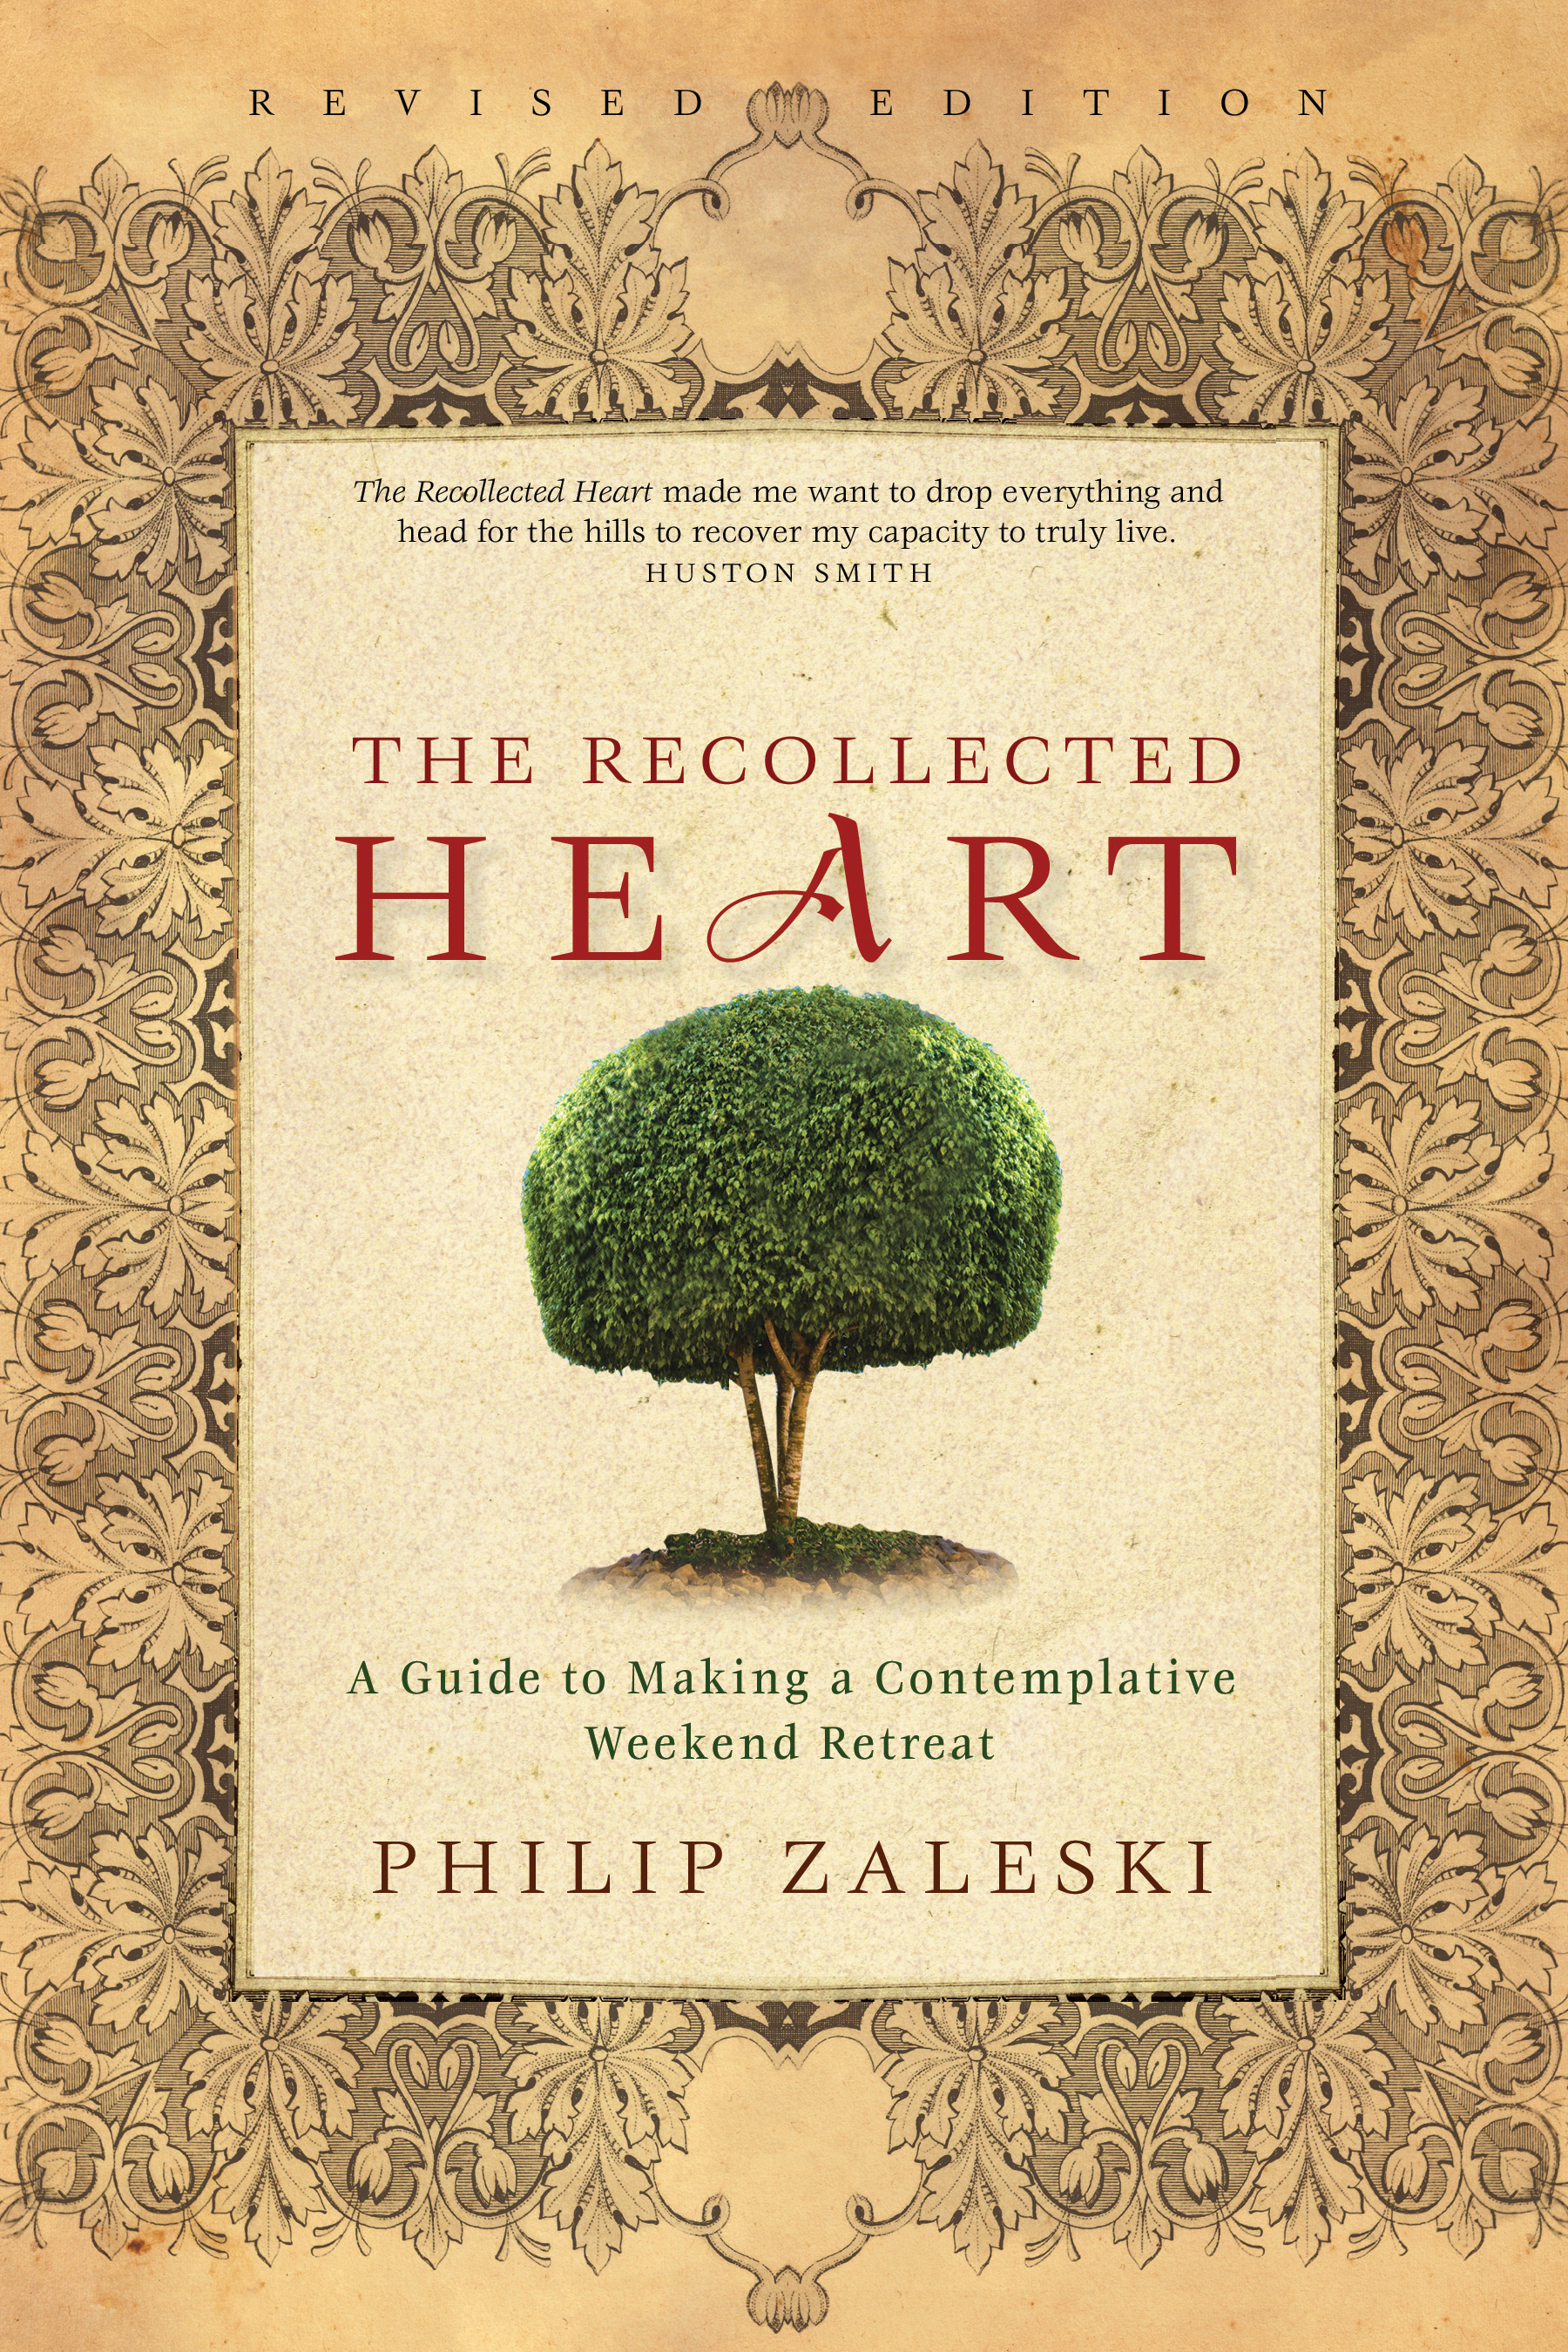 The Recollected Heart